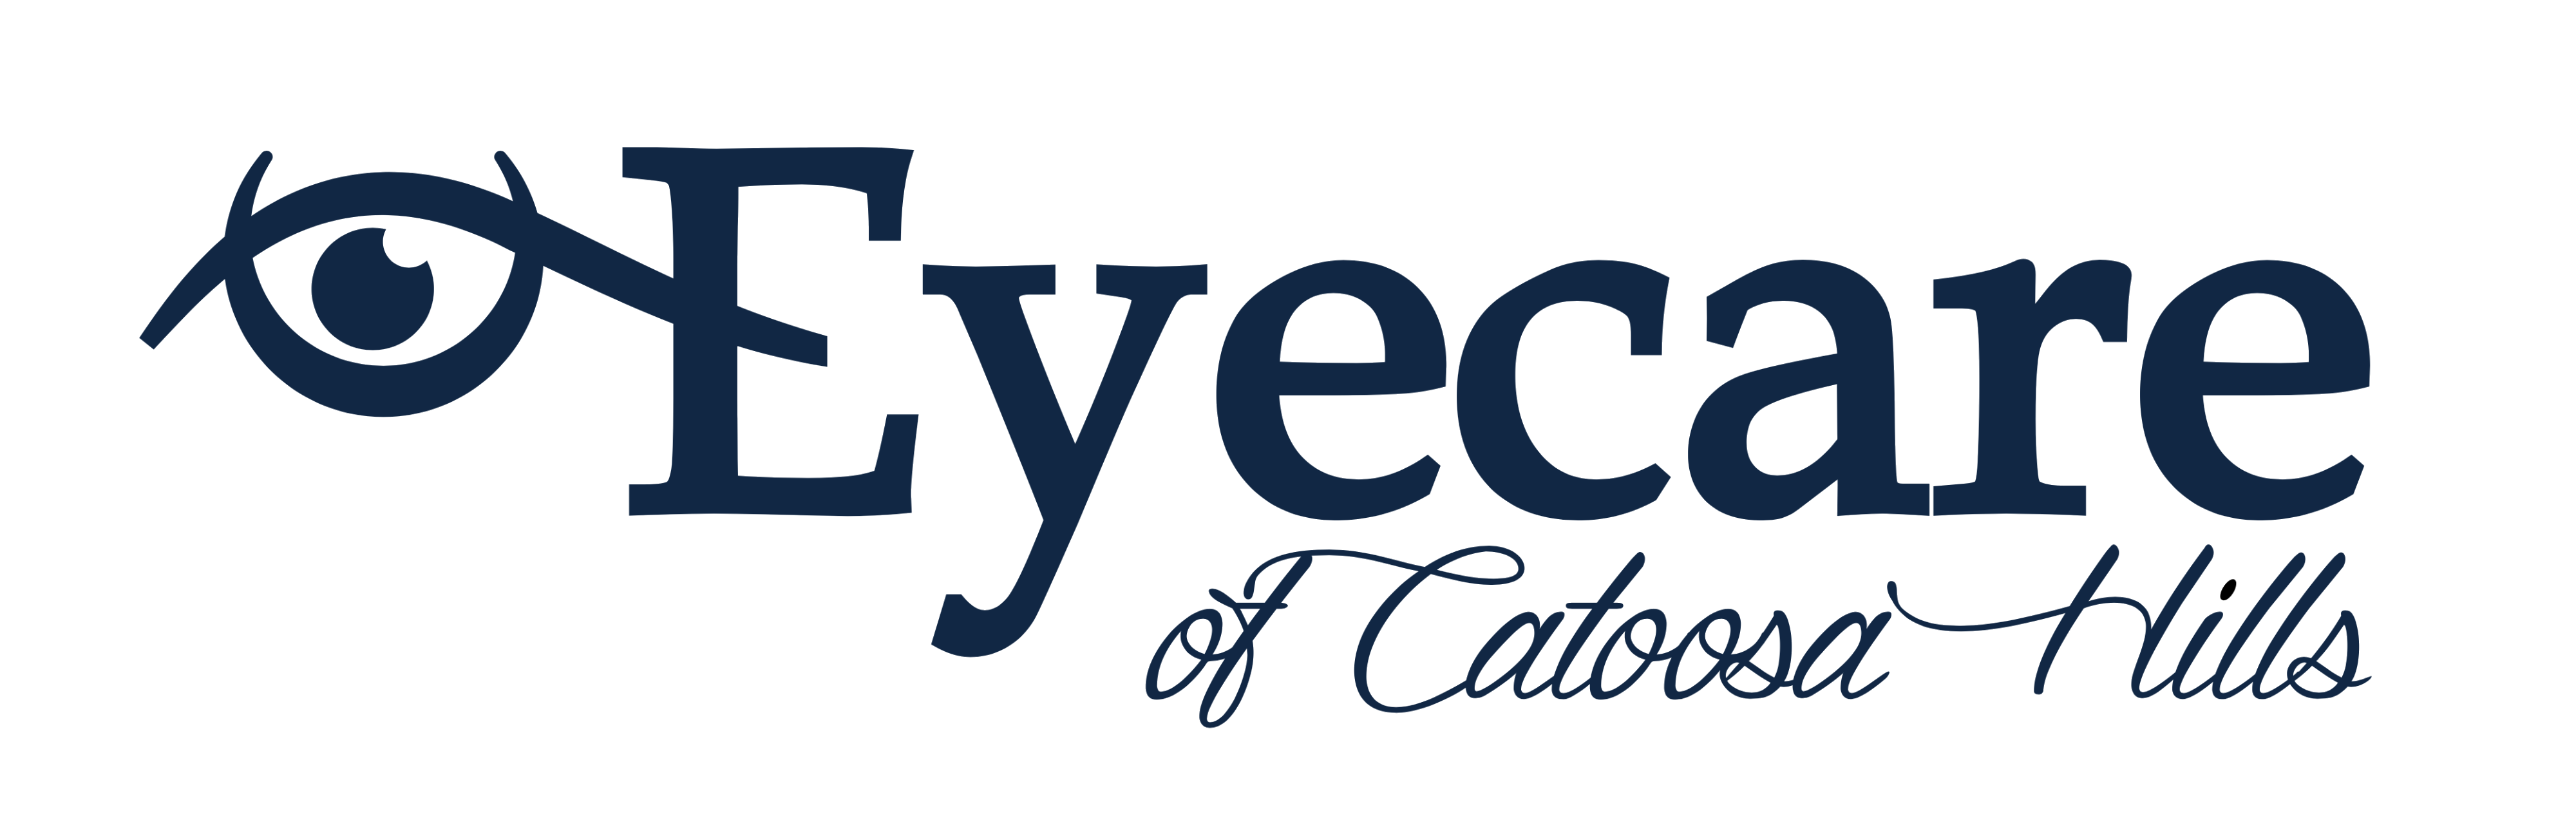 Eyecare of Catoosa